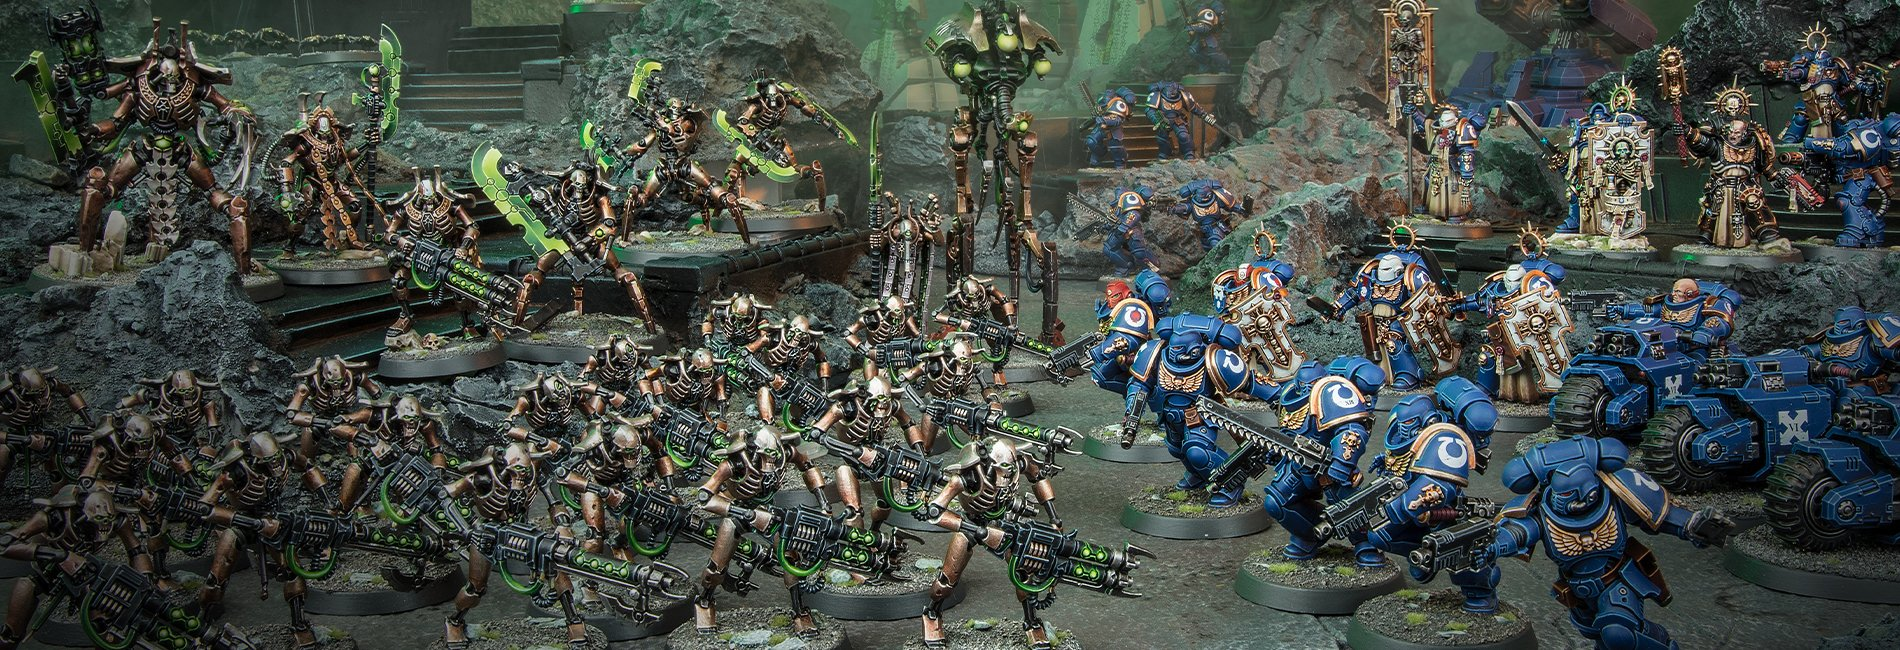 Warhammer 40000 Necrons VS Space Marines